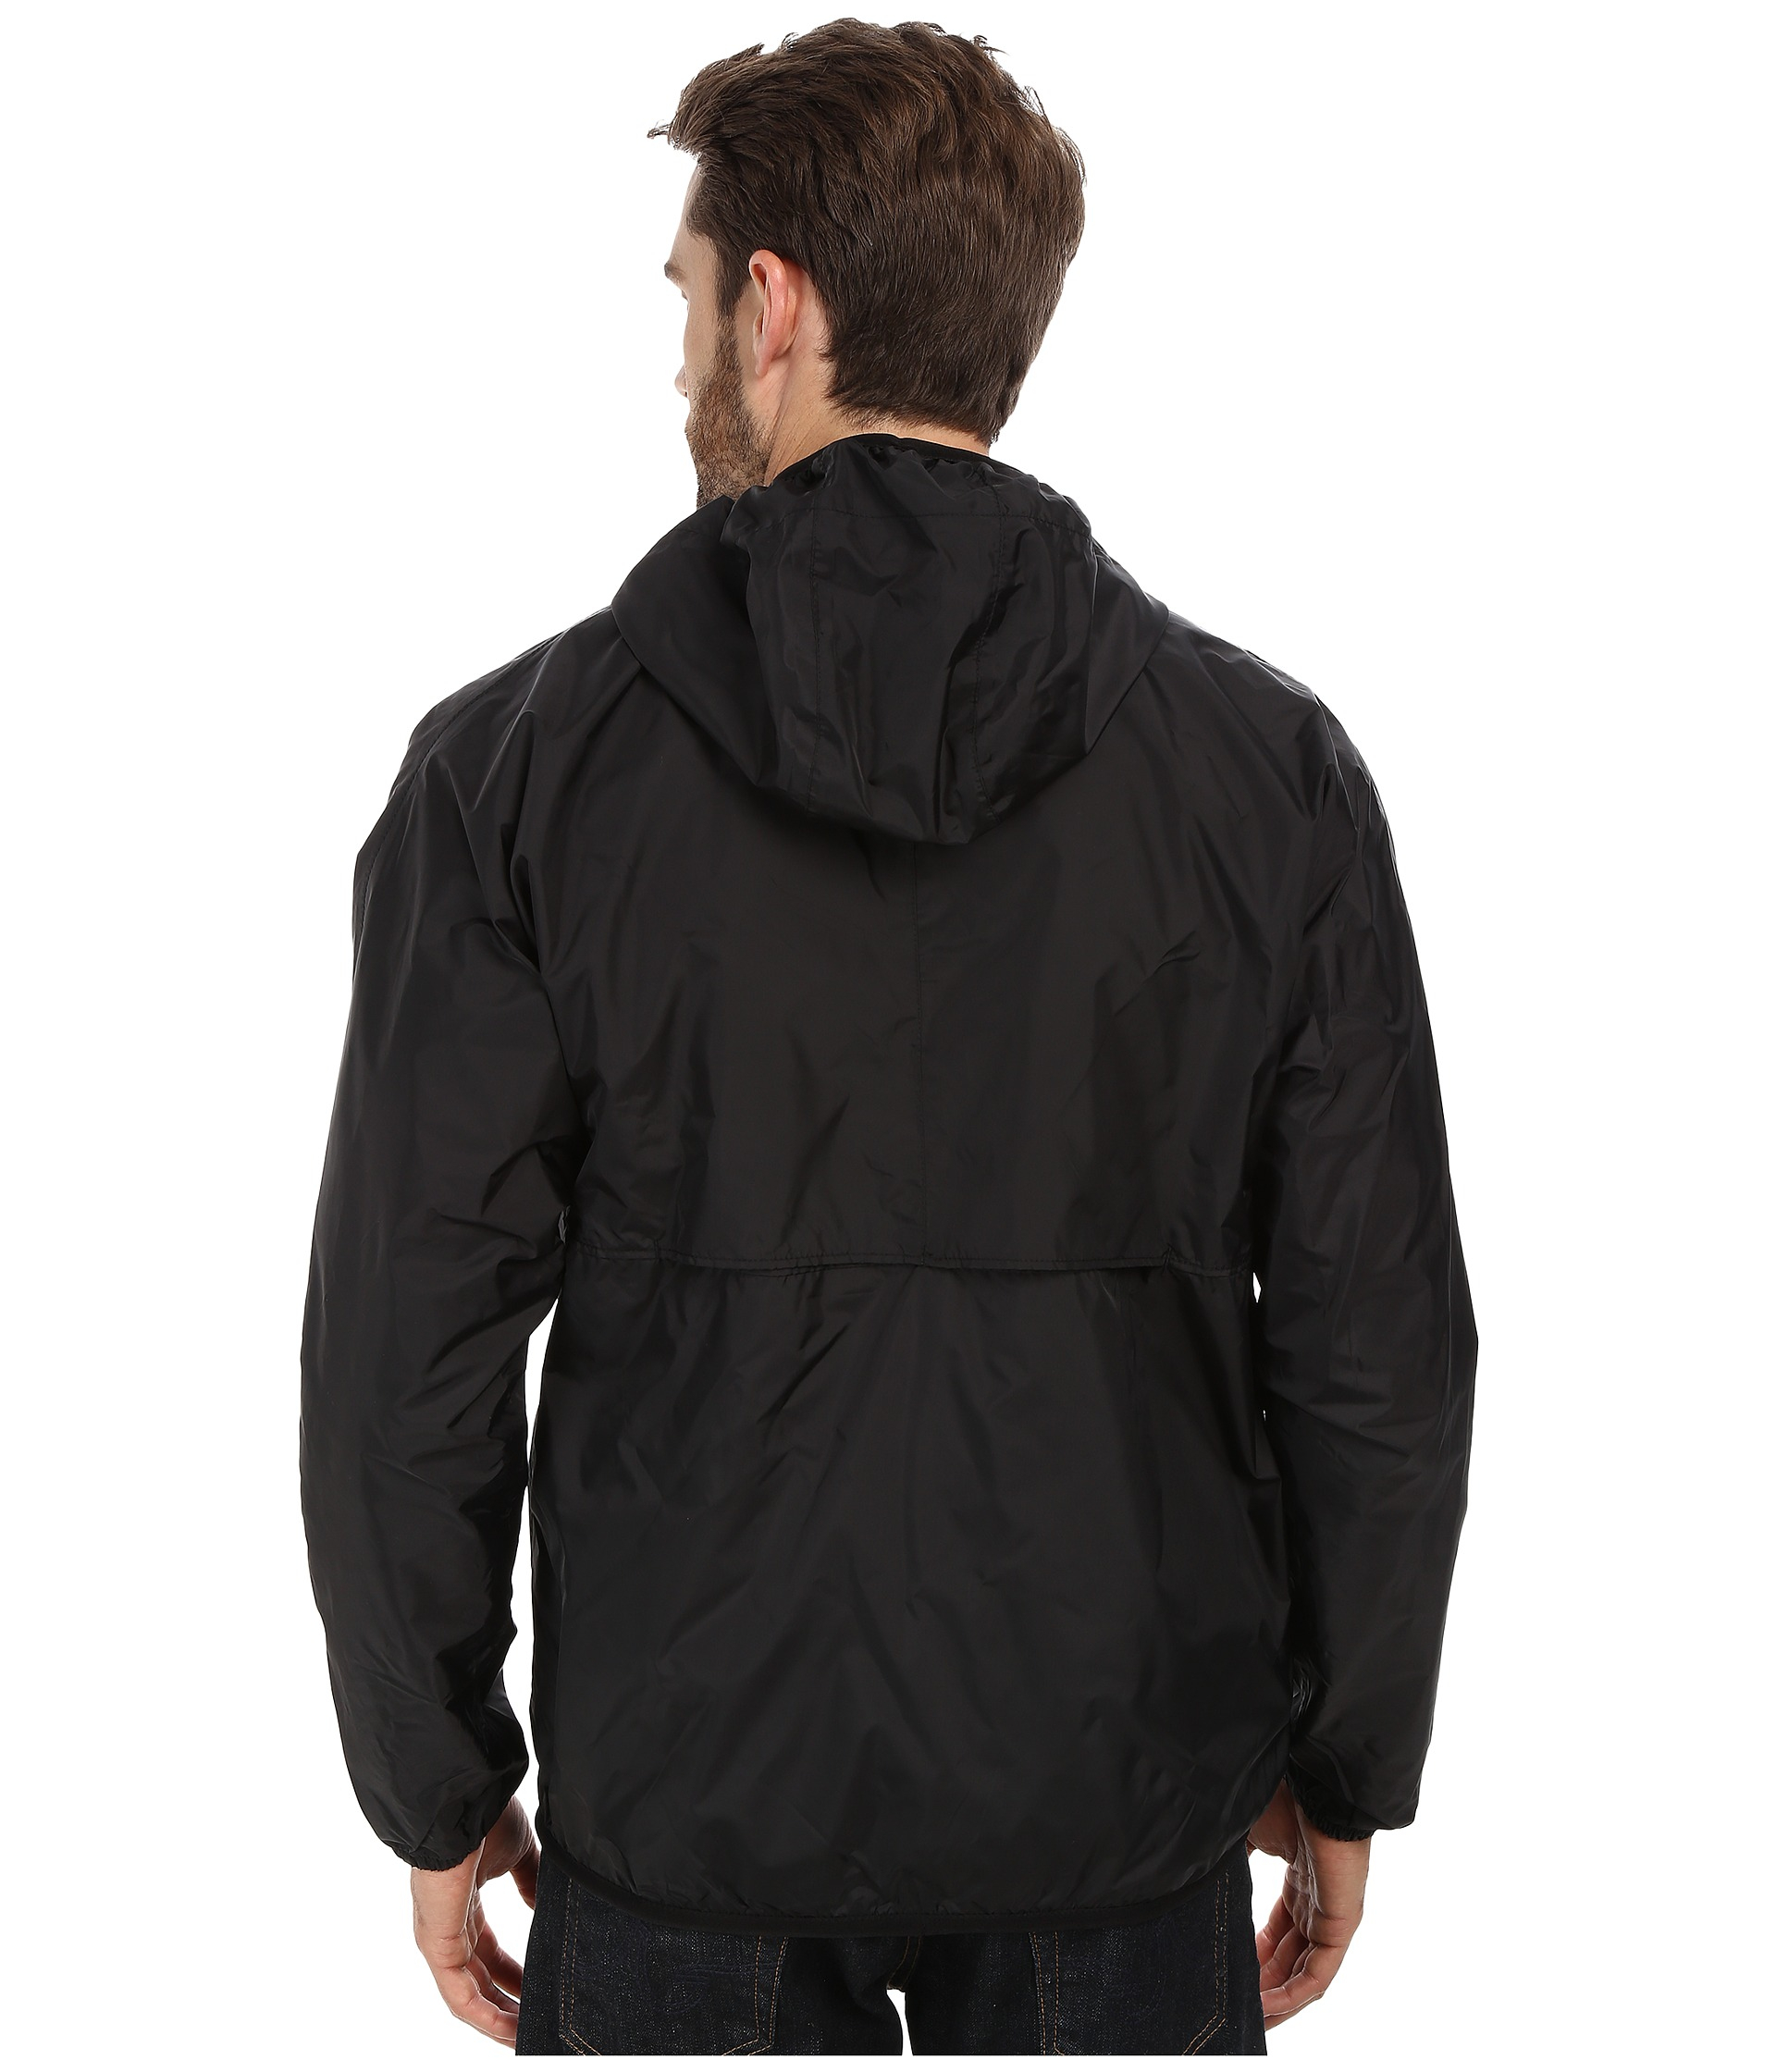 k way claude klassic waterproof jacket w hood in black for men lyst. Black Bedroom Furniture Sets. Home Design Ideas